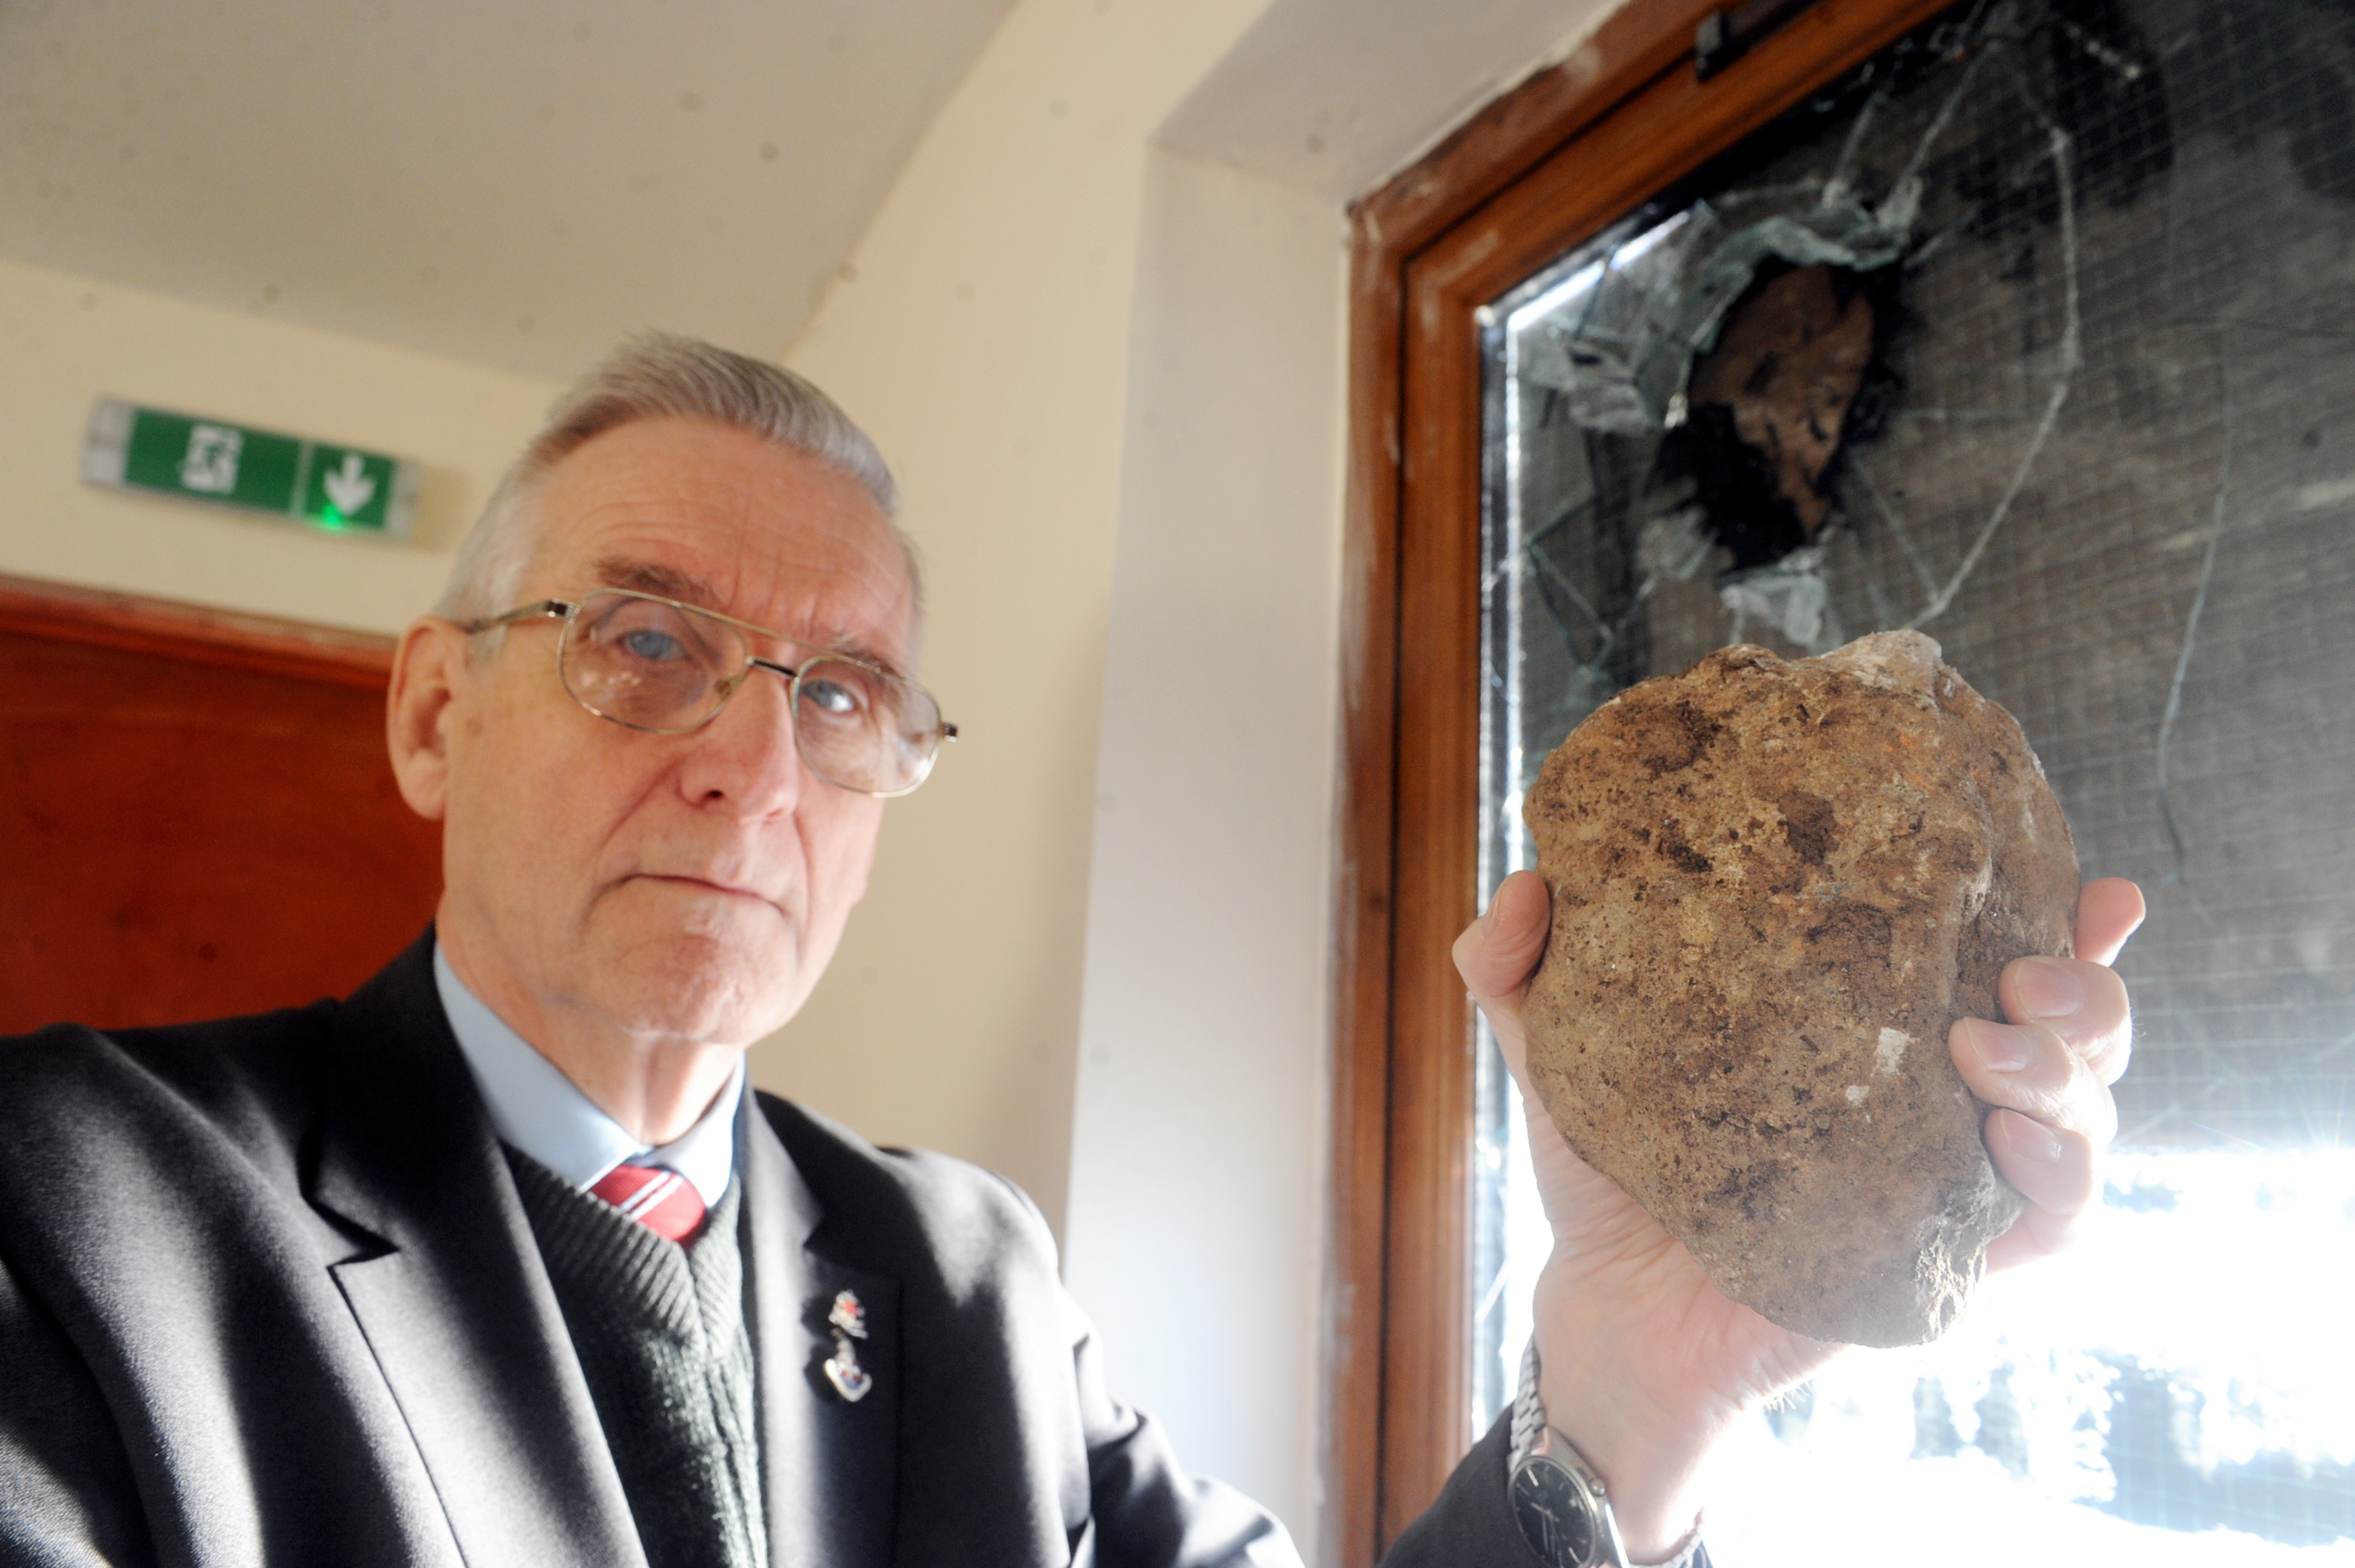 Rev Andy Cowie holds the rock which was hurled through the church window.